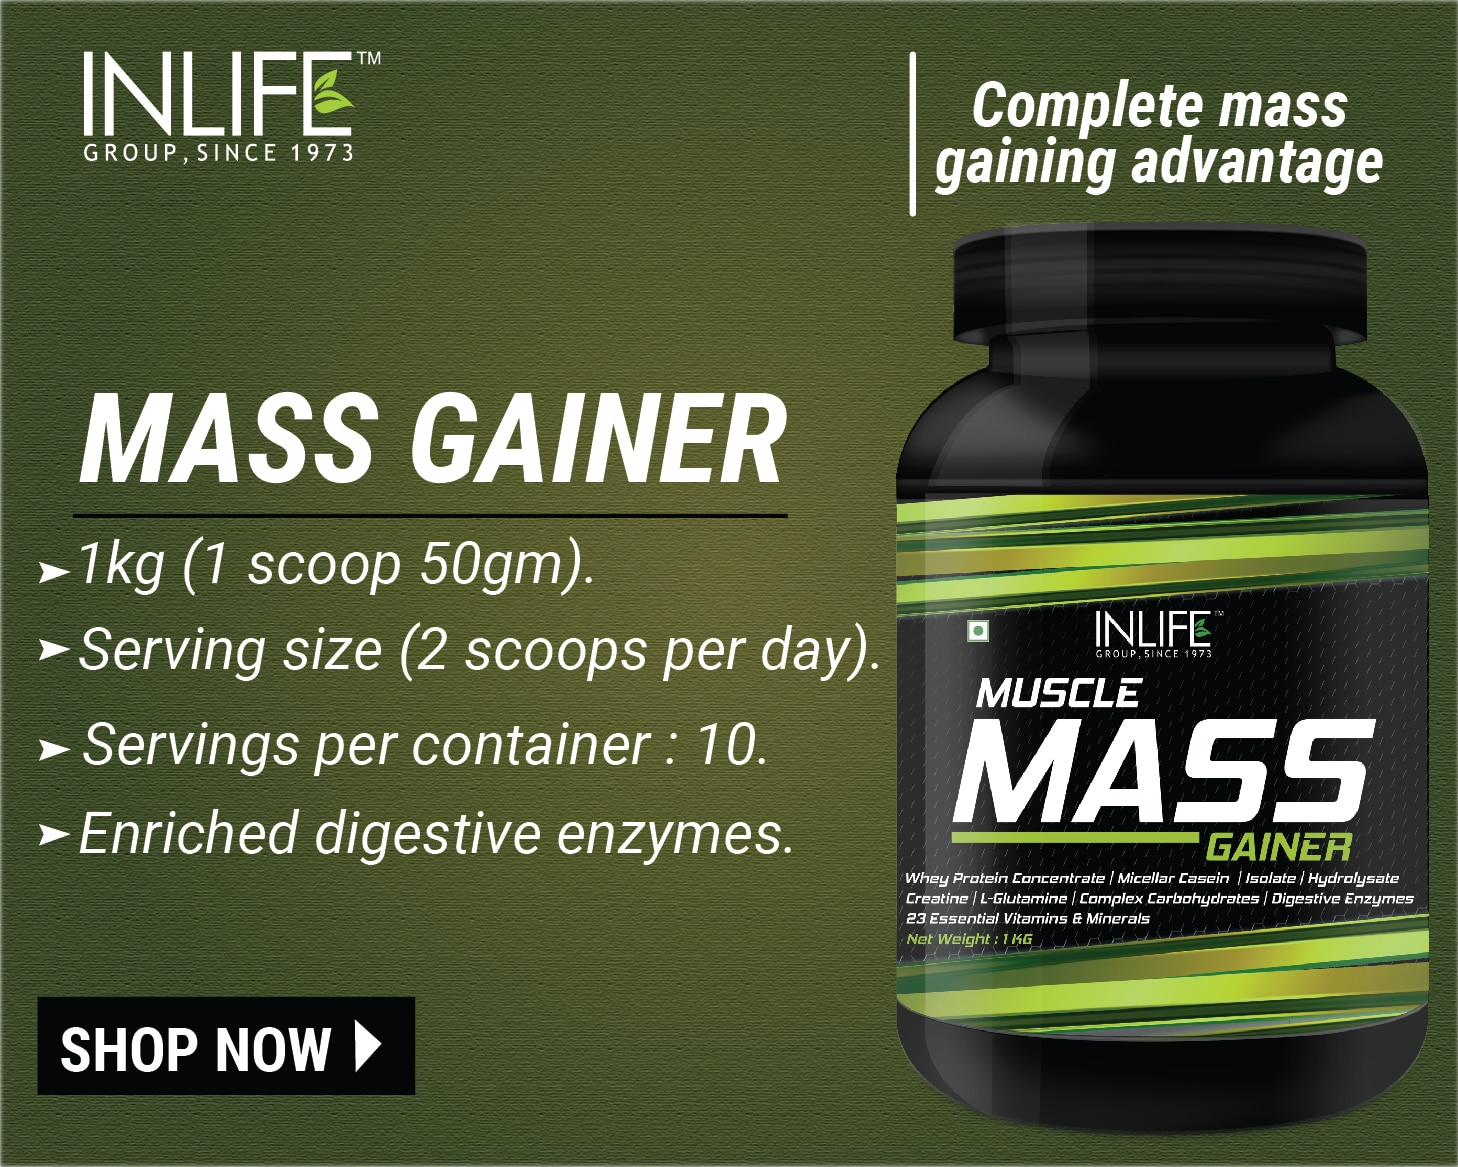 Inlife Muscles Mass Gainer